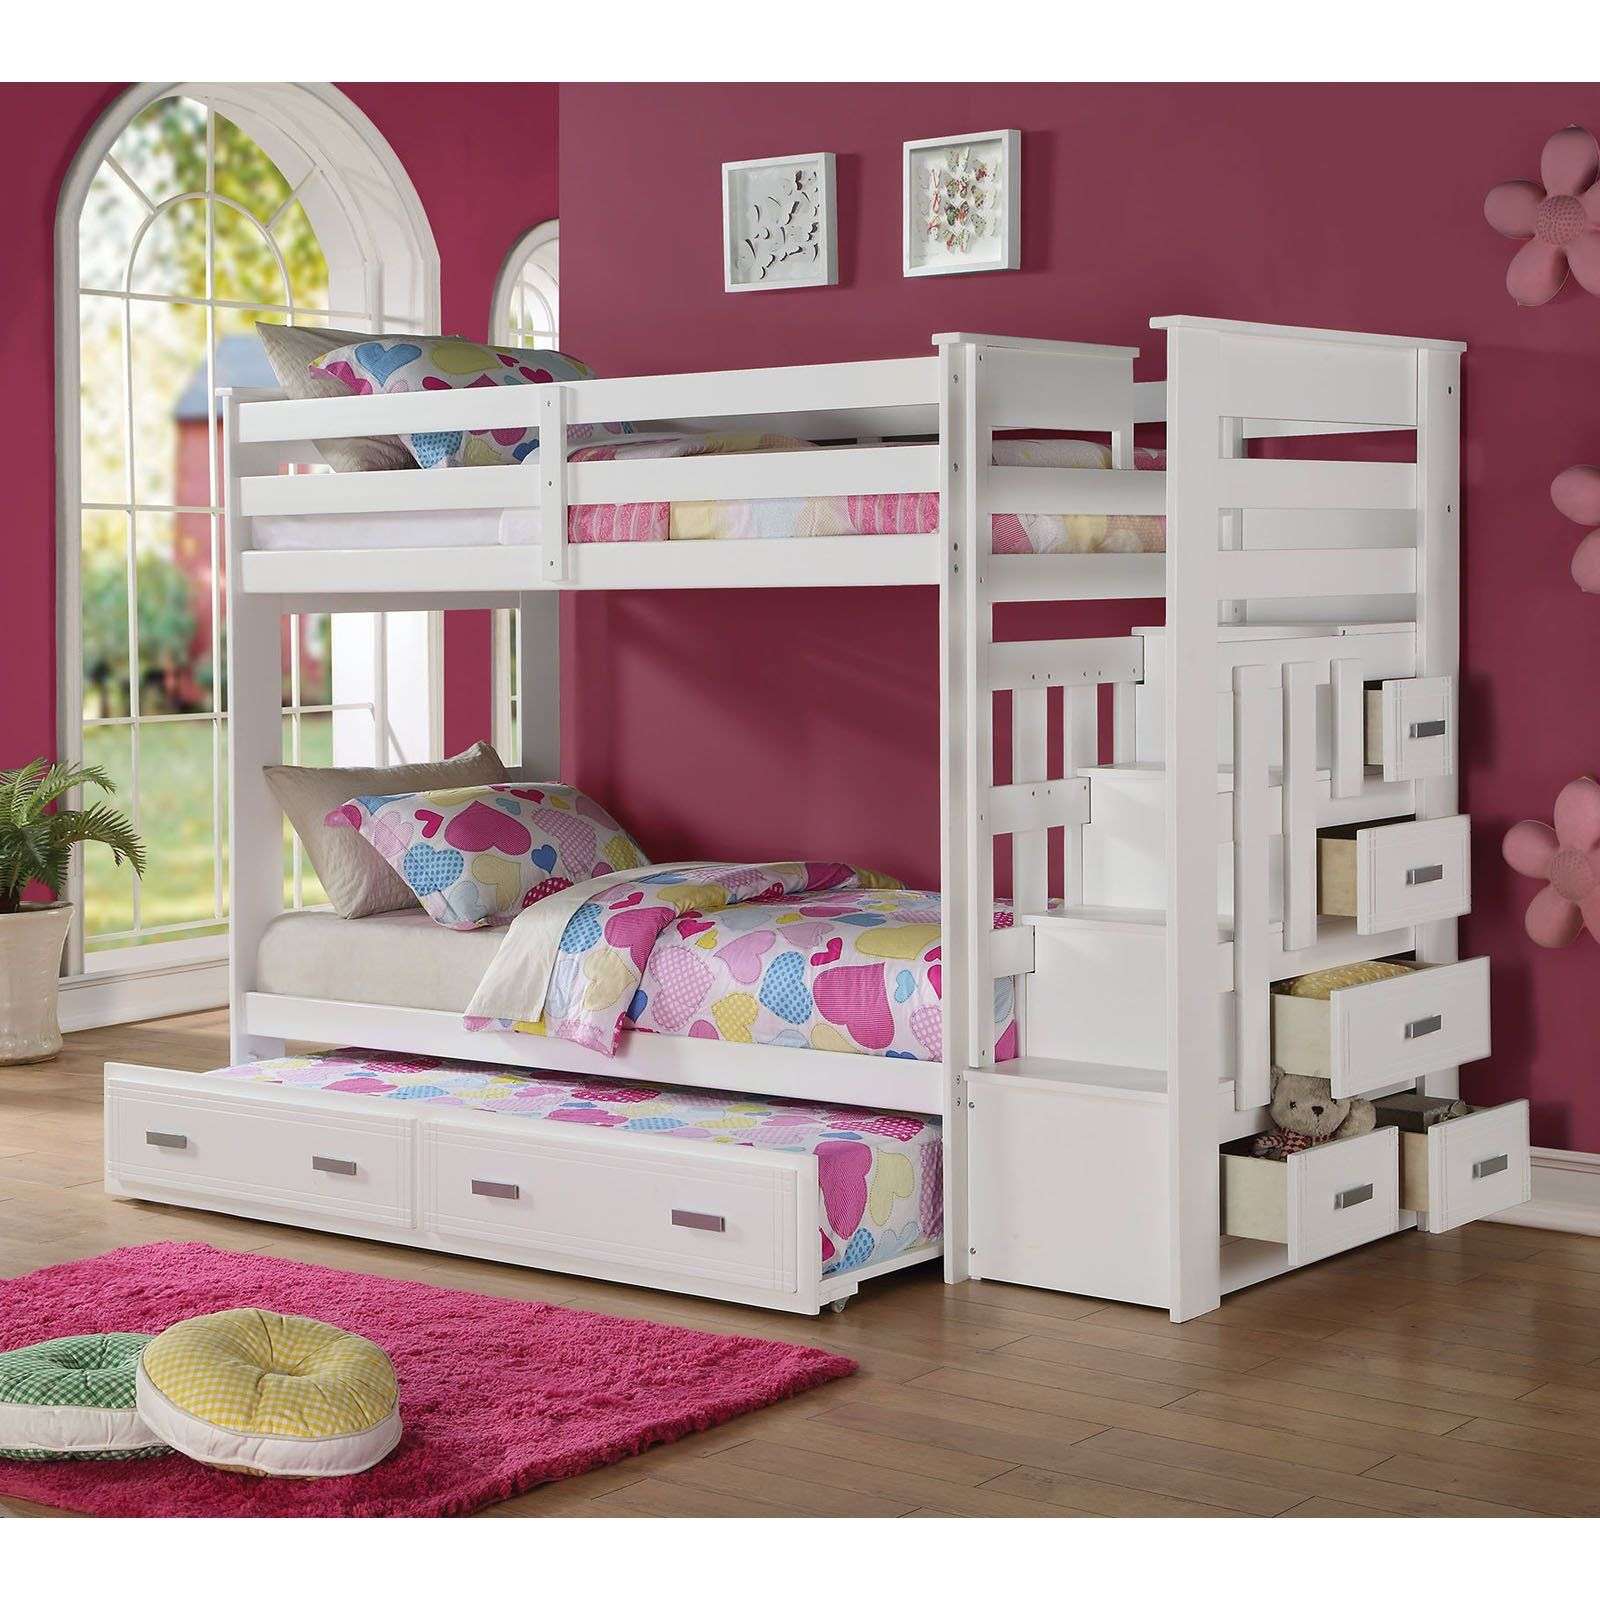 Acme Furniture Allentown Twin Over Twin Bunk Bed With Storage